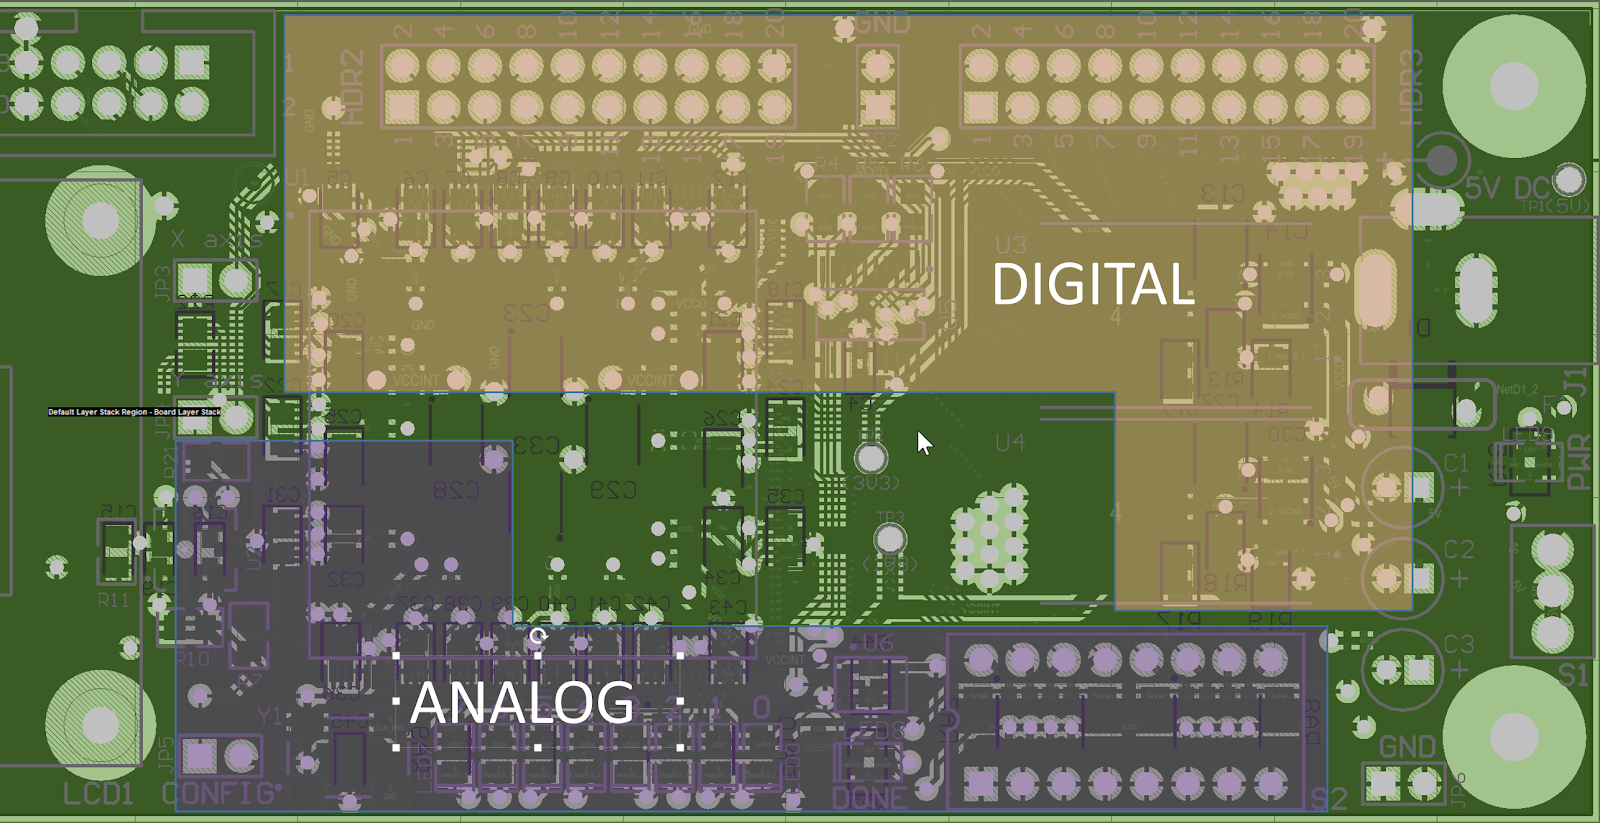 Analog and digital ground regions in a PCB